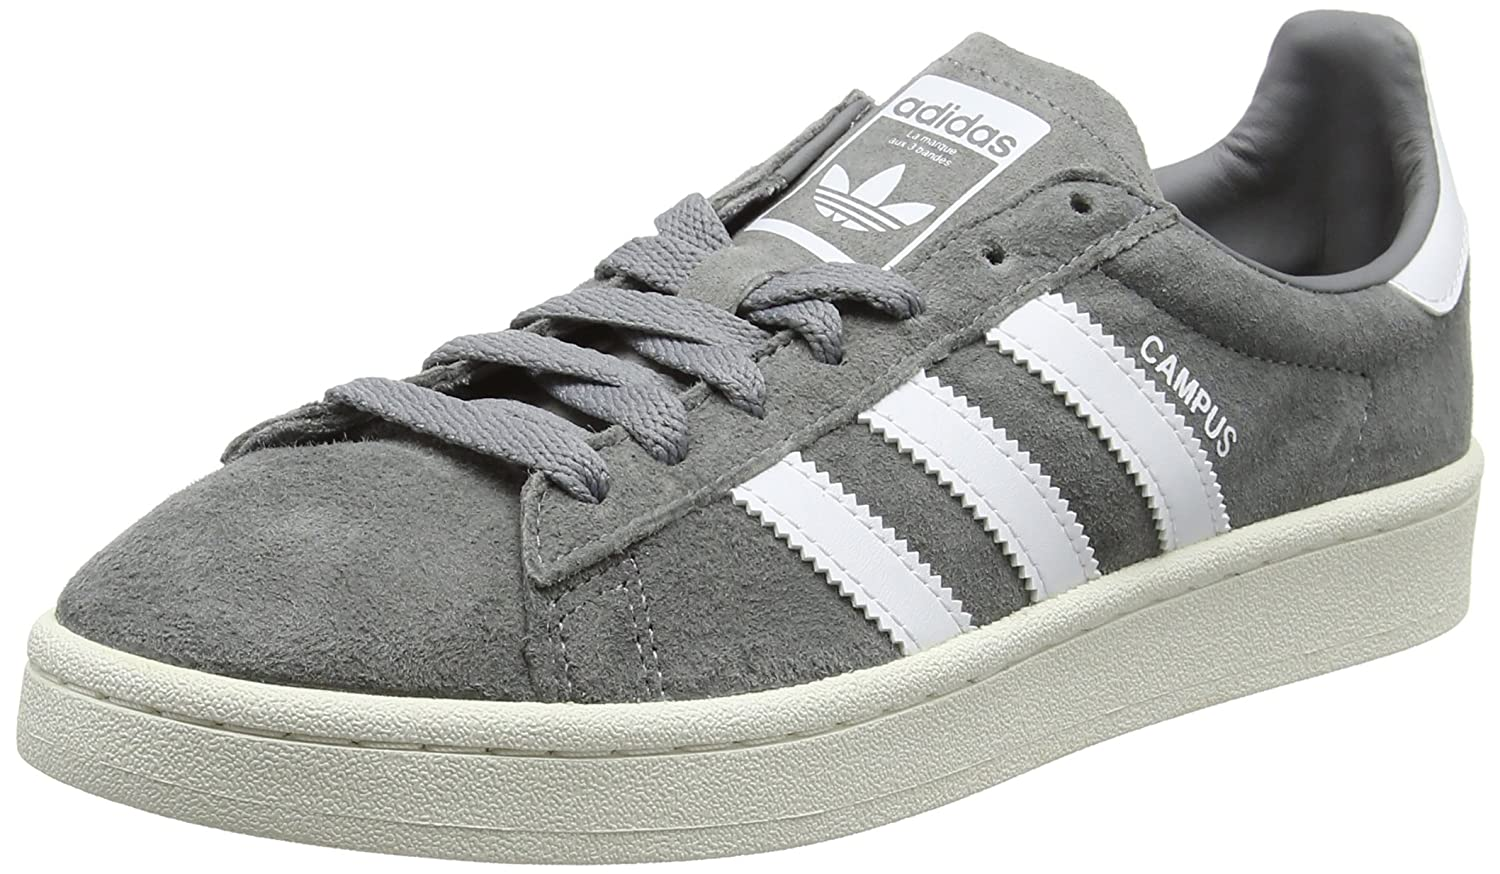 40652a61 Amazon.com | adidas Originals Men's Campus Suede Sneakers Grey in Size US  10.5 Men = 11.5 Women | Fashion Sneakers